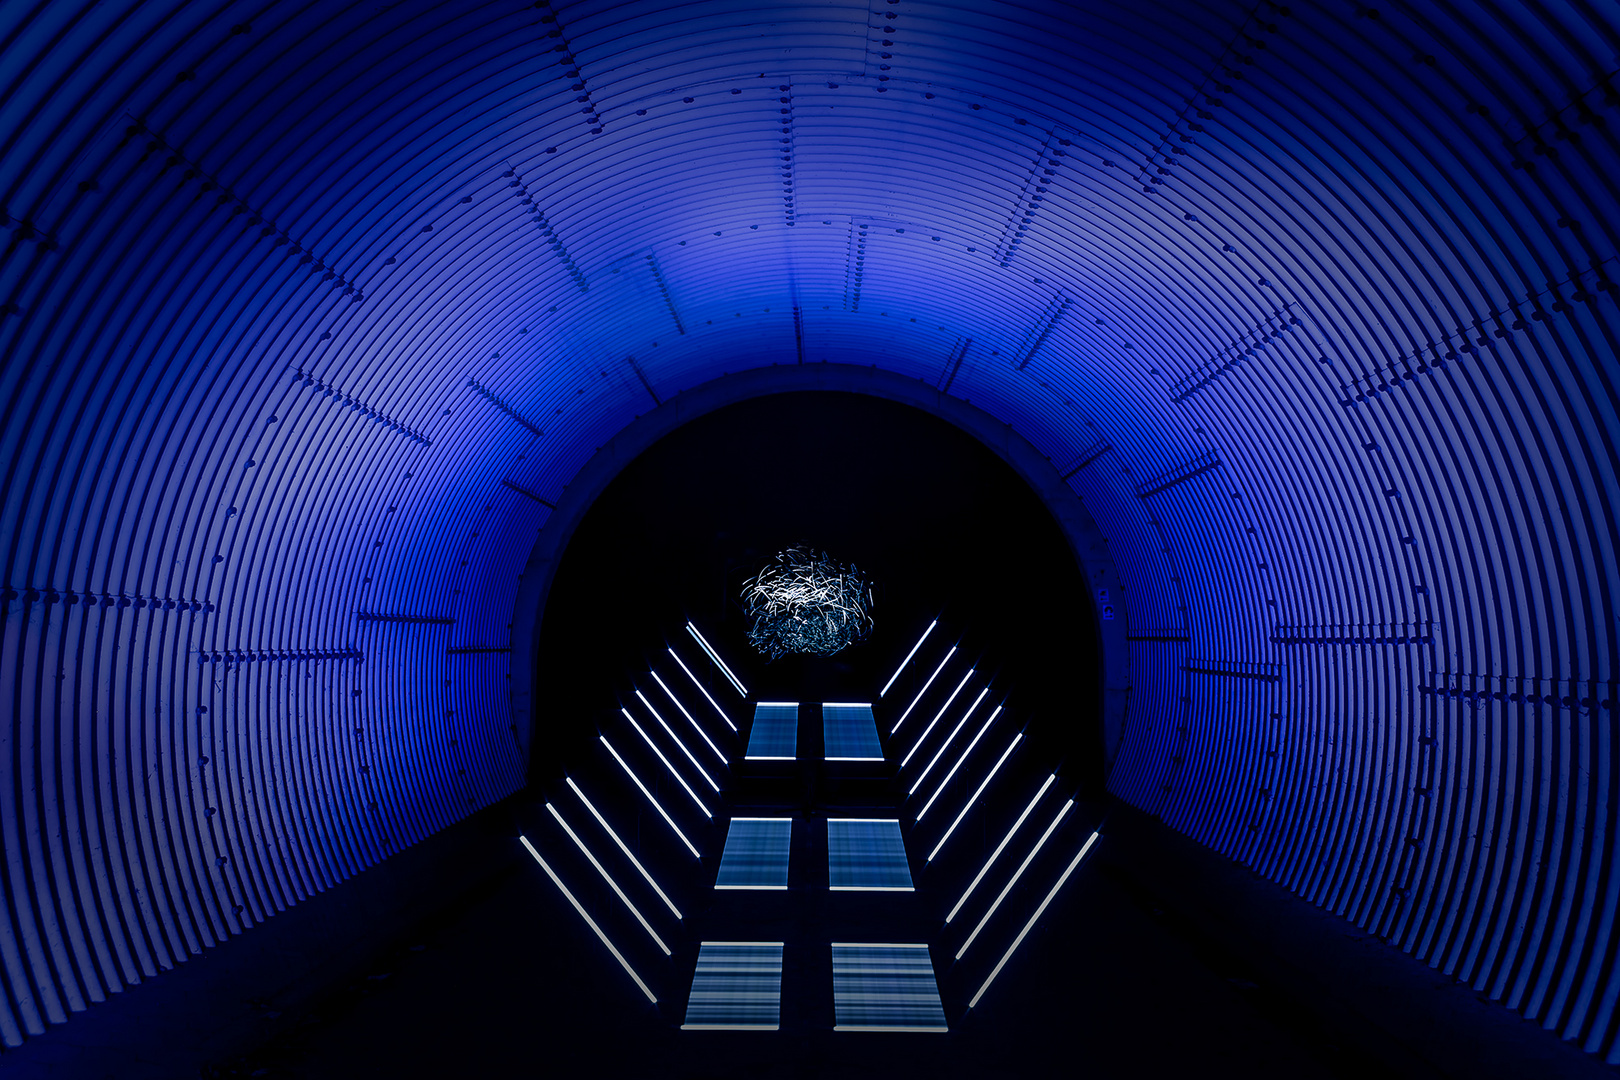 Electrical Movements in the Dark #267 - Tunnel Mystery (1)